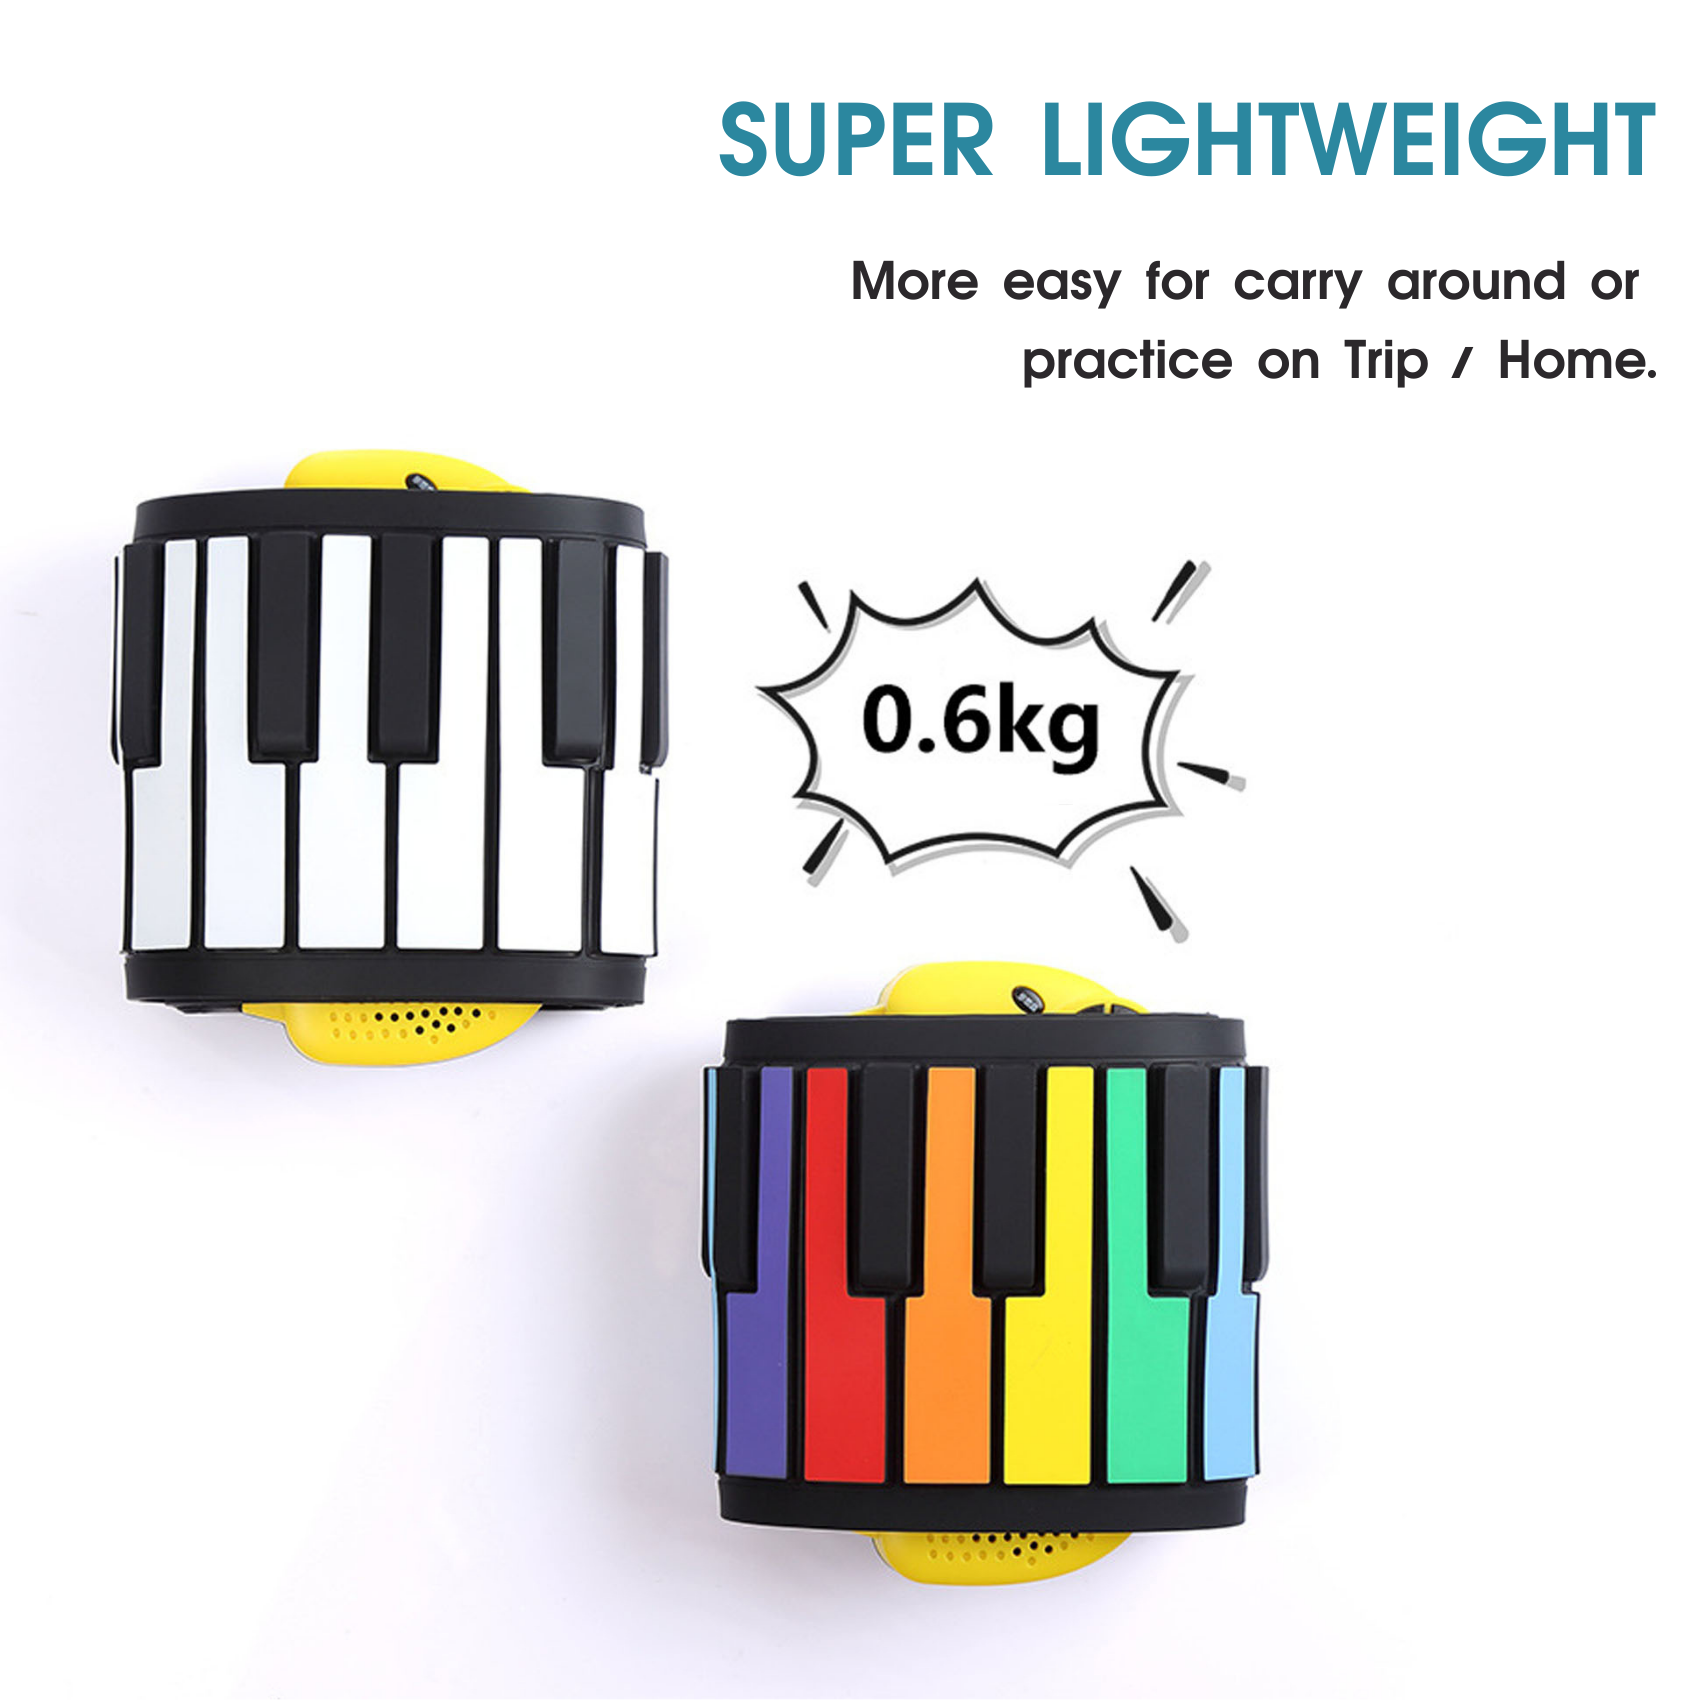 DigitalLfie RP49P2-C Portable Roll Up Electronic 49 Keys Silicone Piano with Speaker